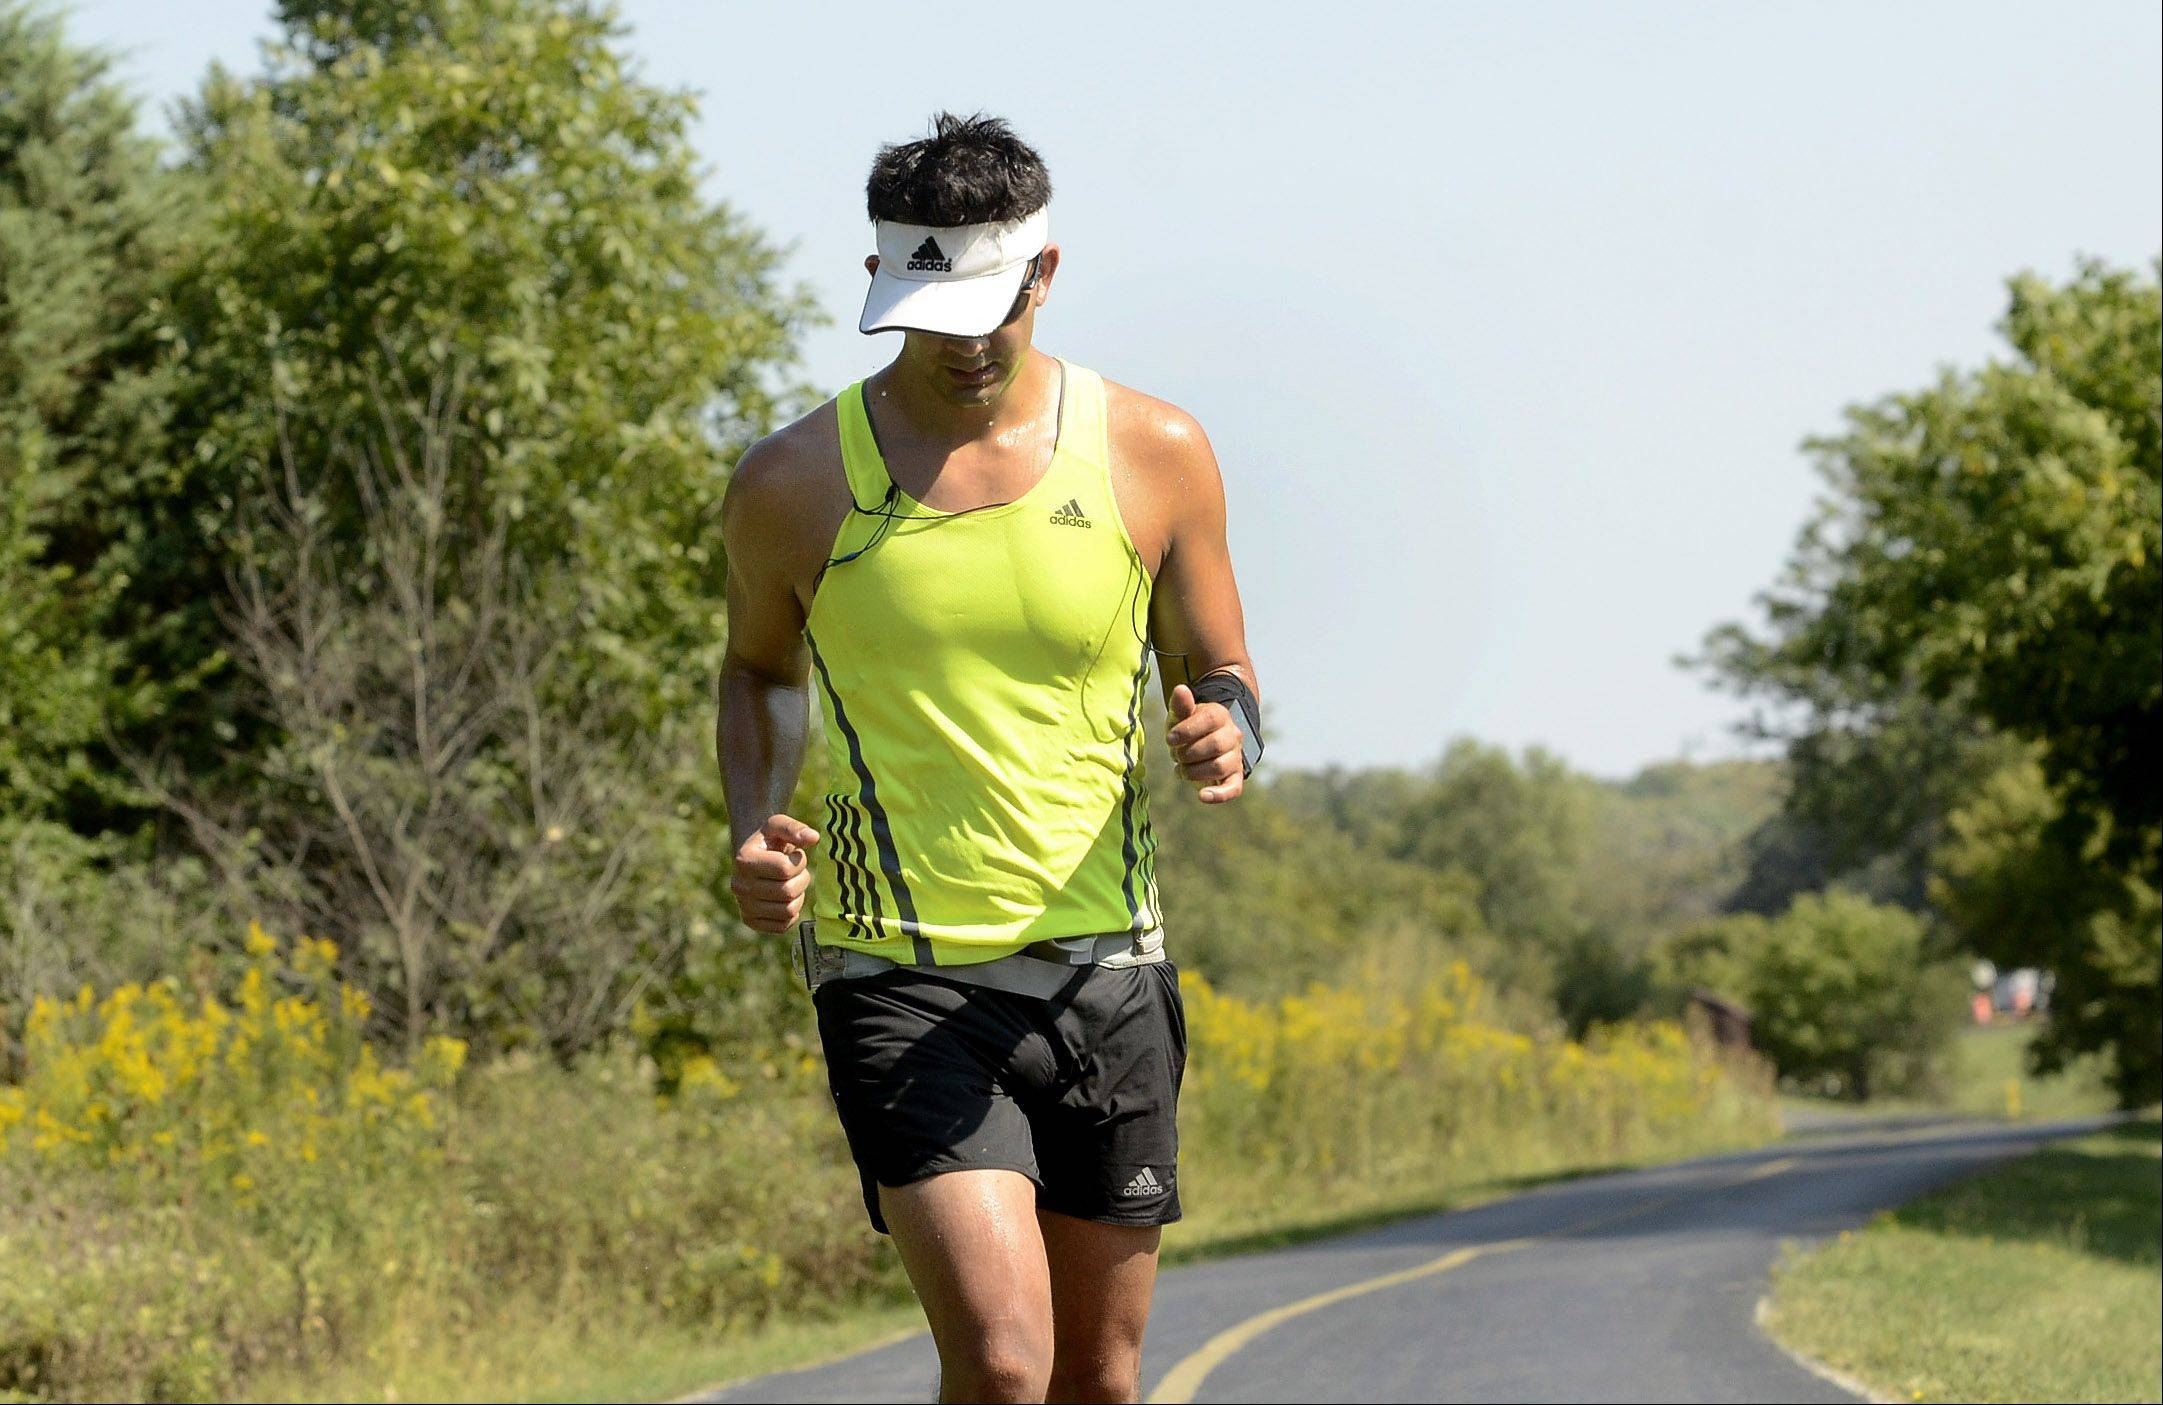 Despite record-tying heat, Michael Rosales of Hoffman Estates took to the paths in Busse Woods to train for the upcoming Chicago Marathon. He runs carrying plenty of water and hydrates constantly in this late summer heat.